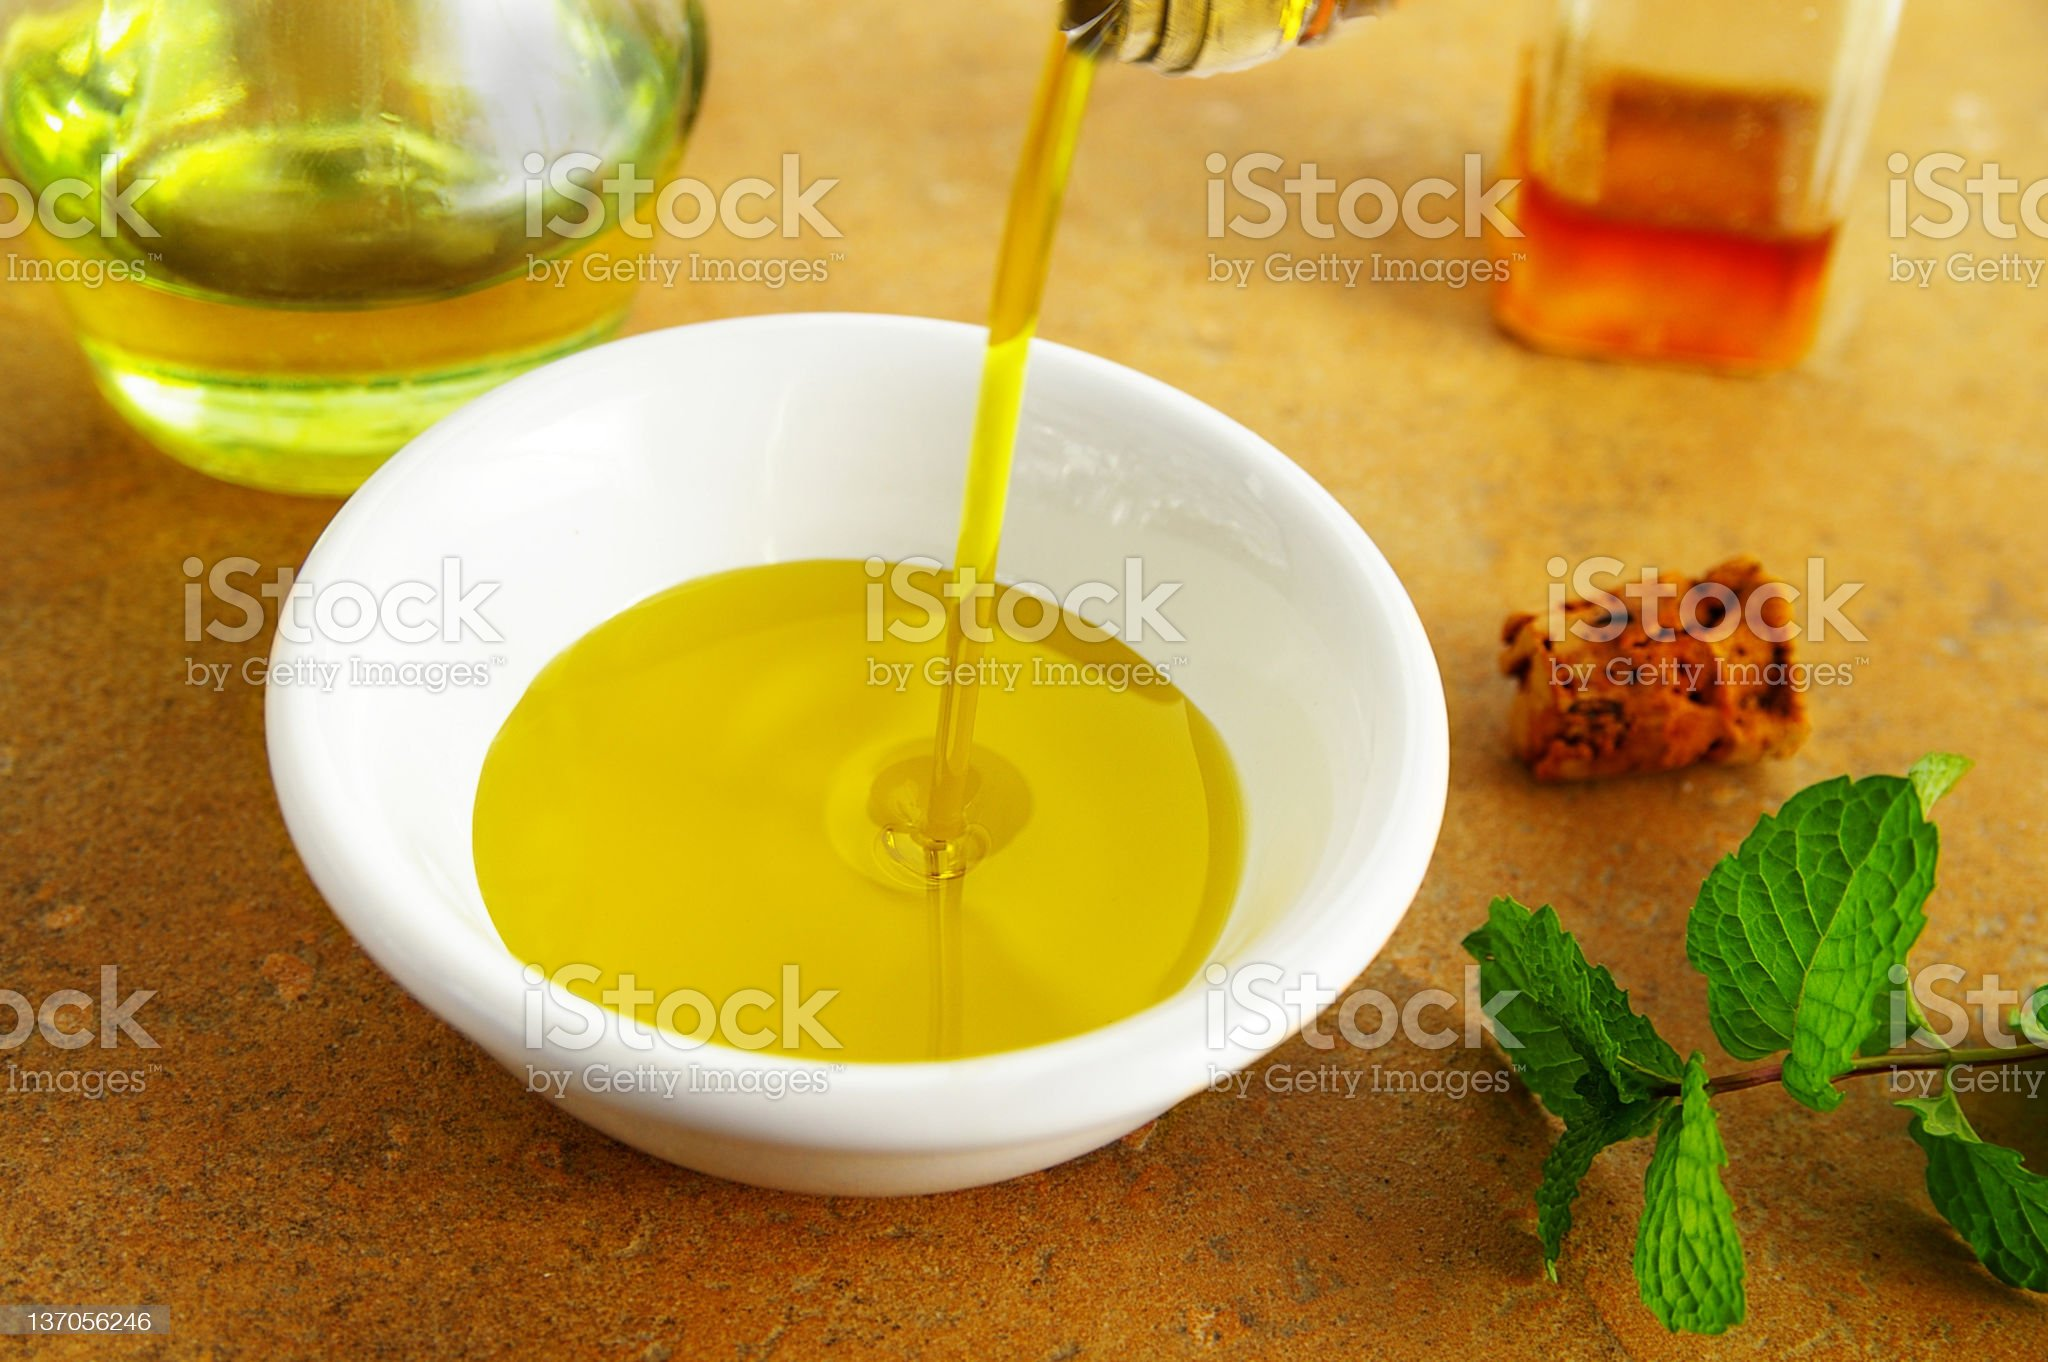 Olive oil being poured into a white bowl royalty-free stock photo